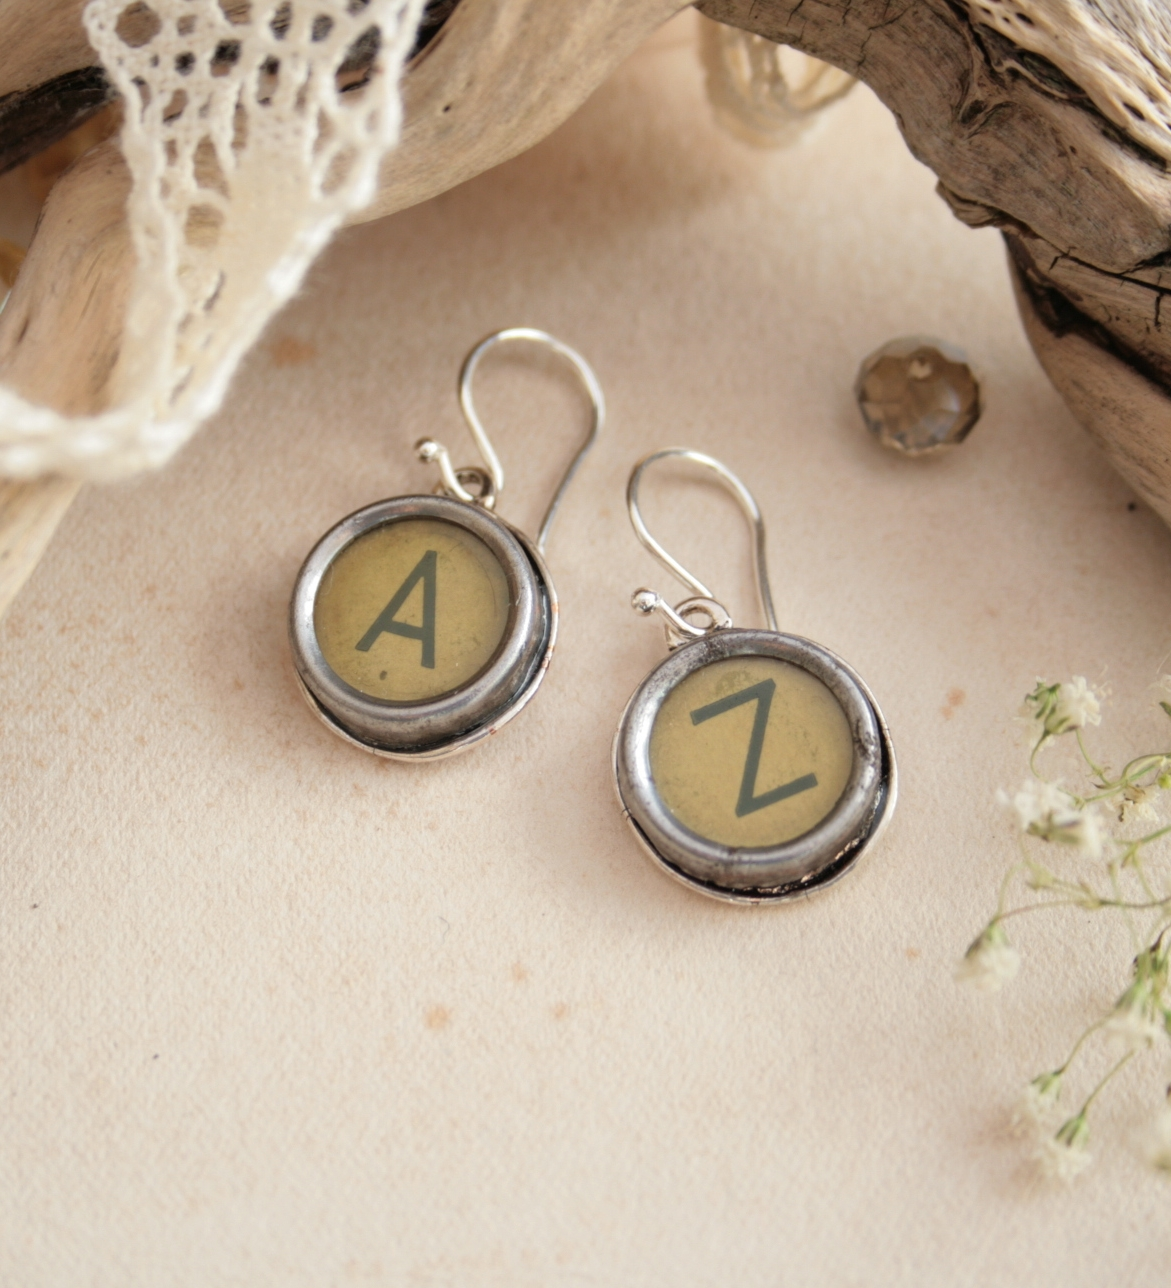 initial earrings / statement dangling earrings made of typewriter key